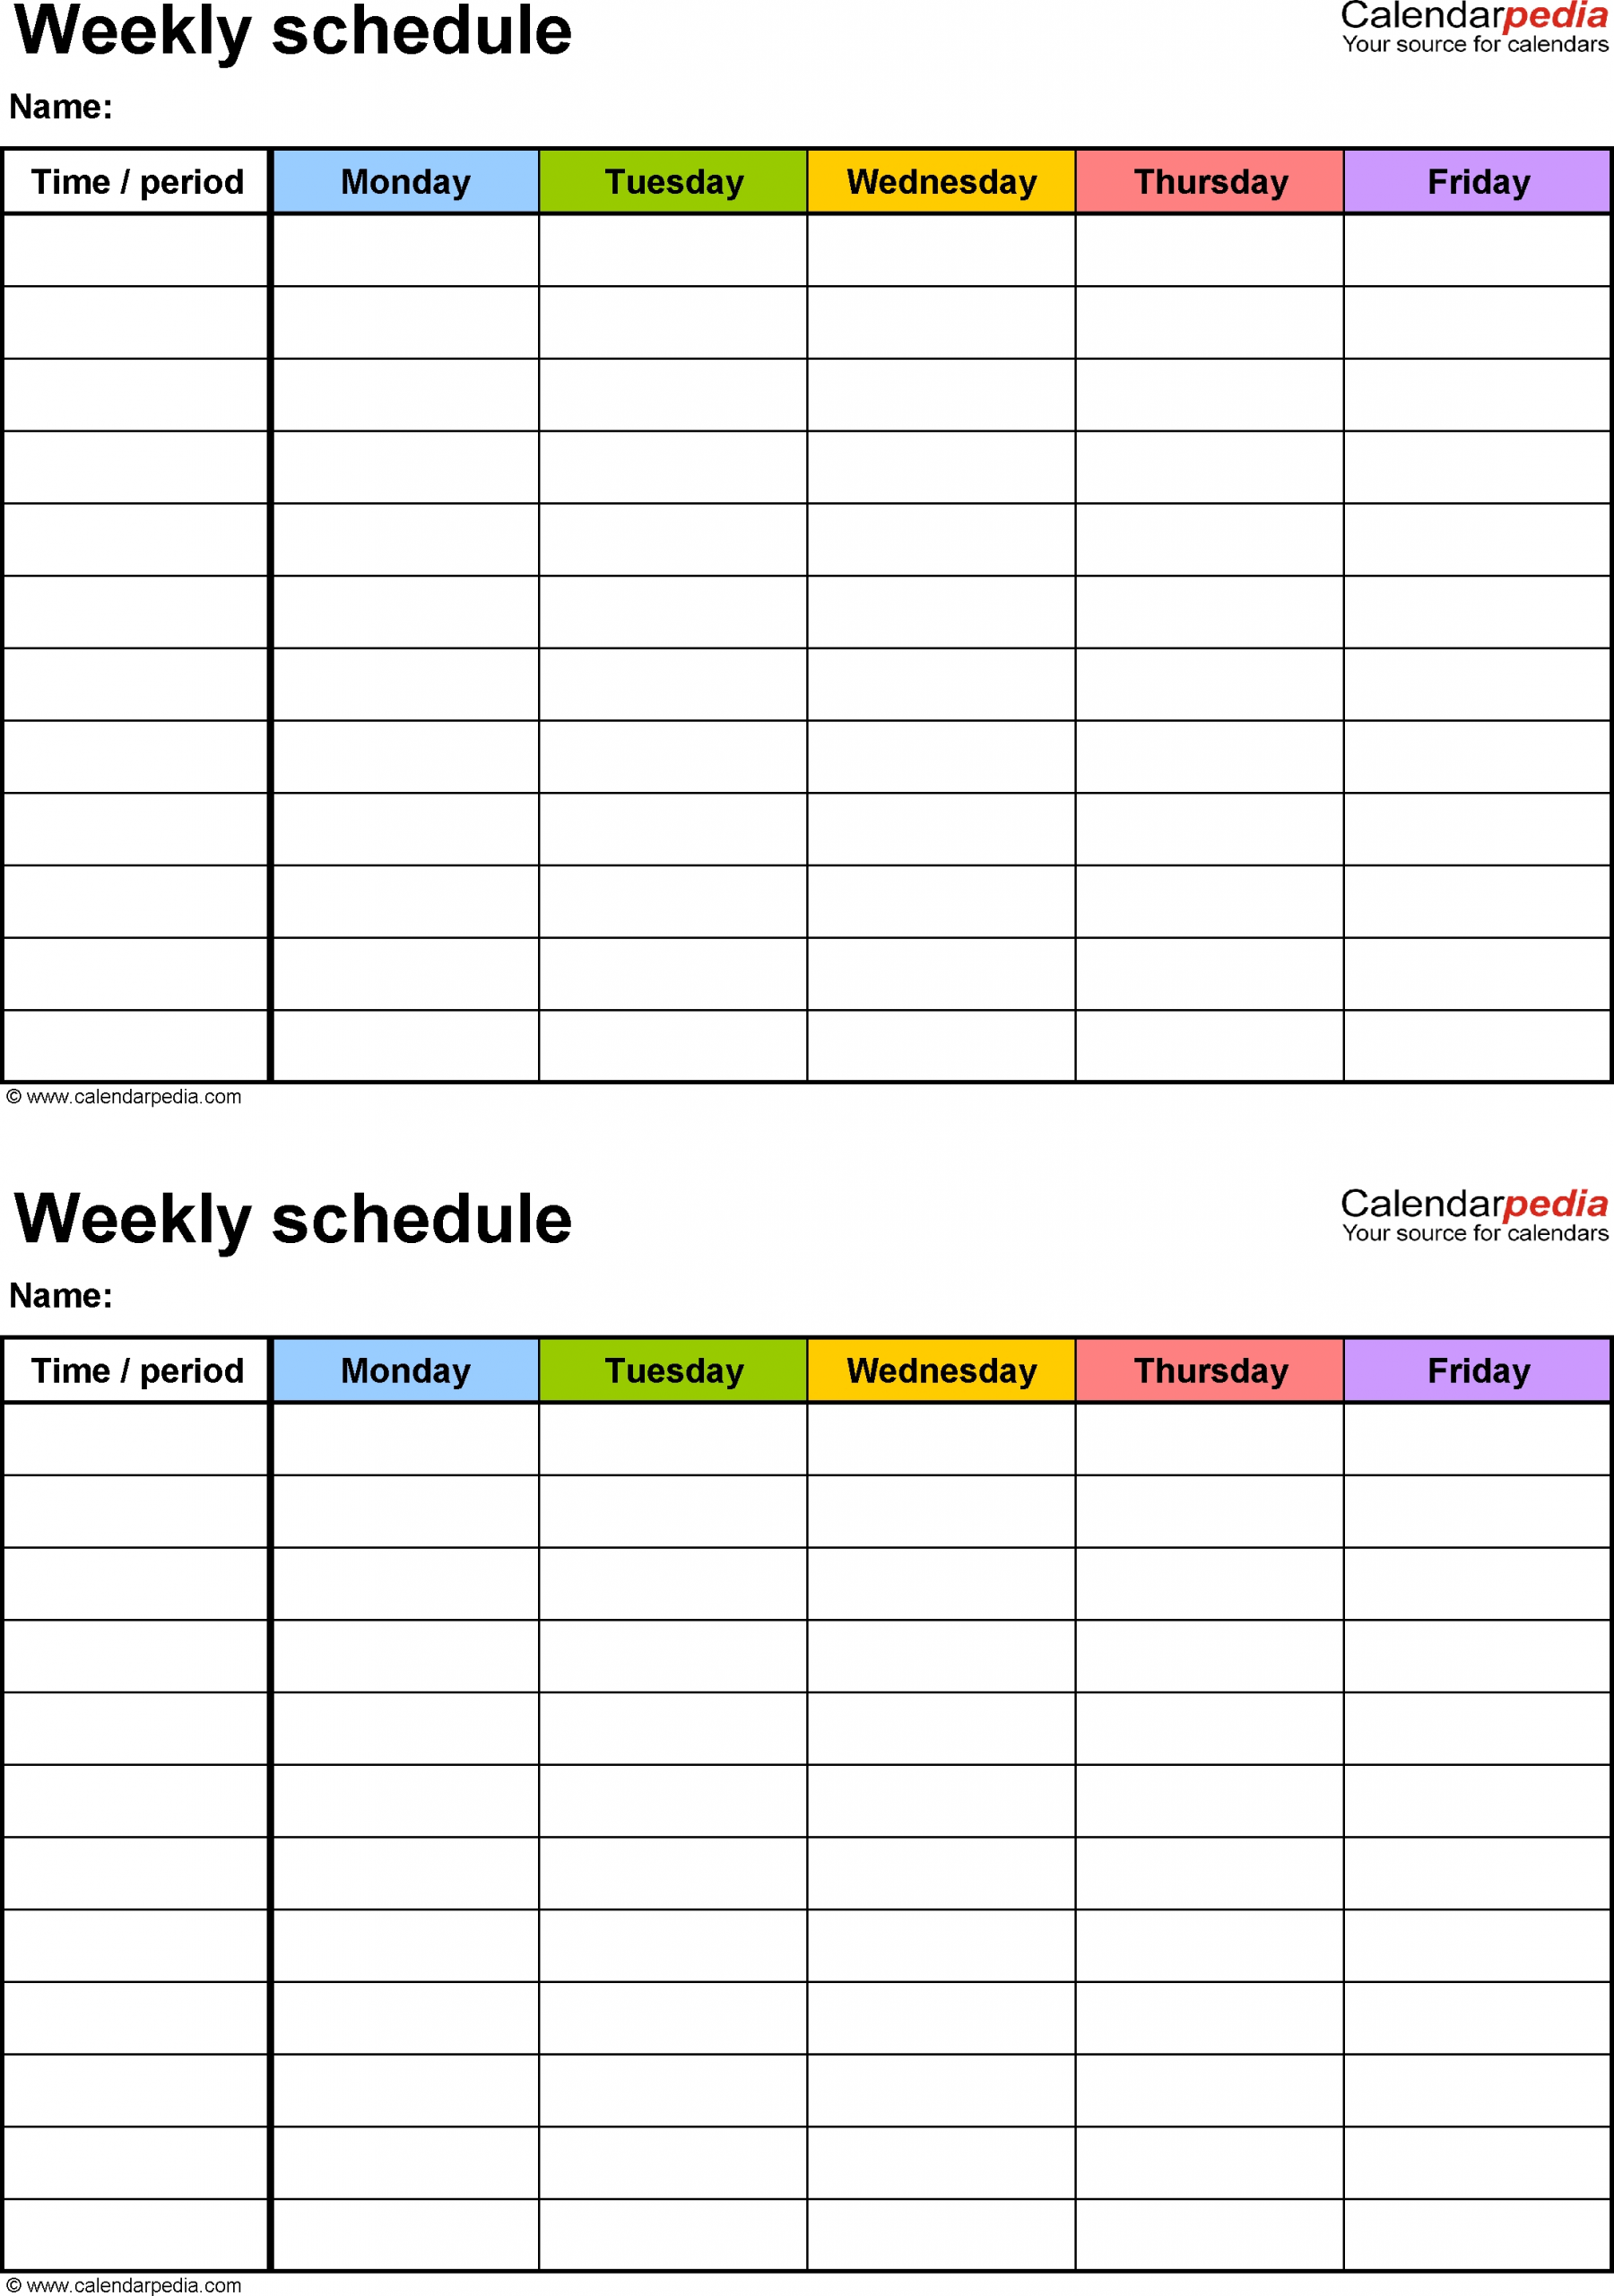 Monday To Friday Monthly Calendar Template | Calendar Monday To Friday Planner Template Printable